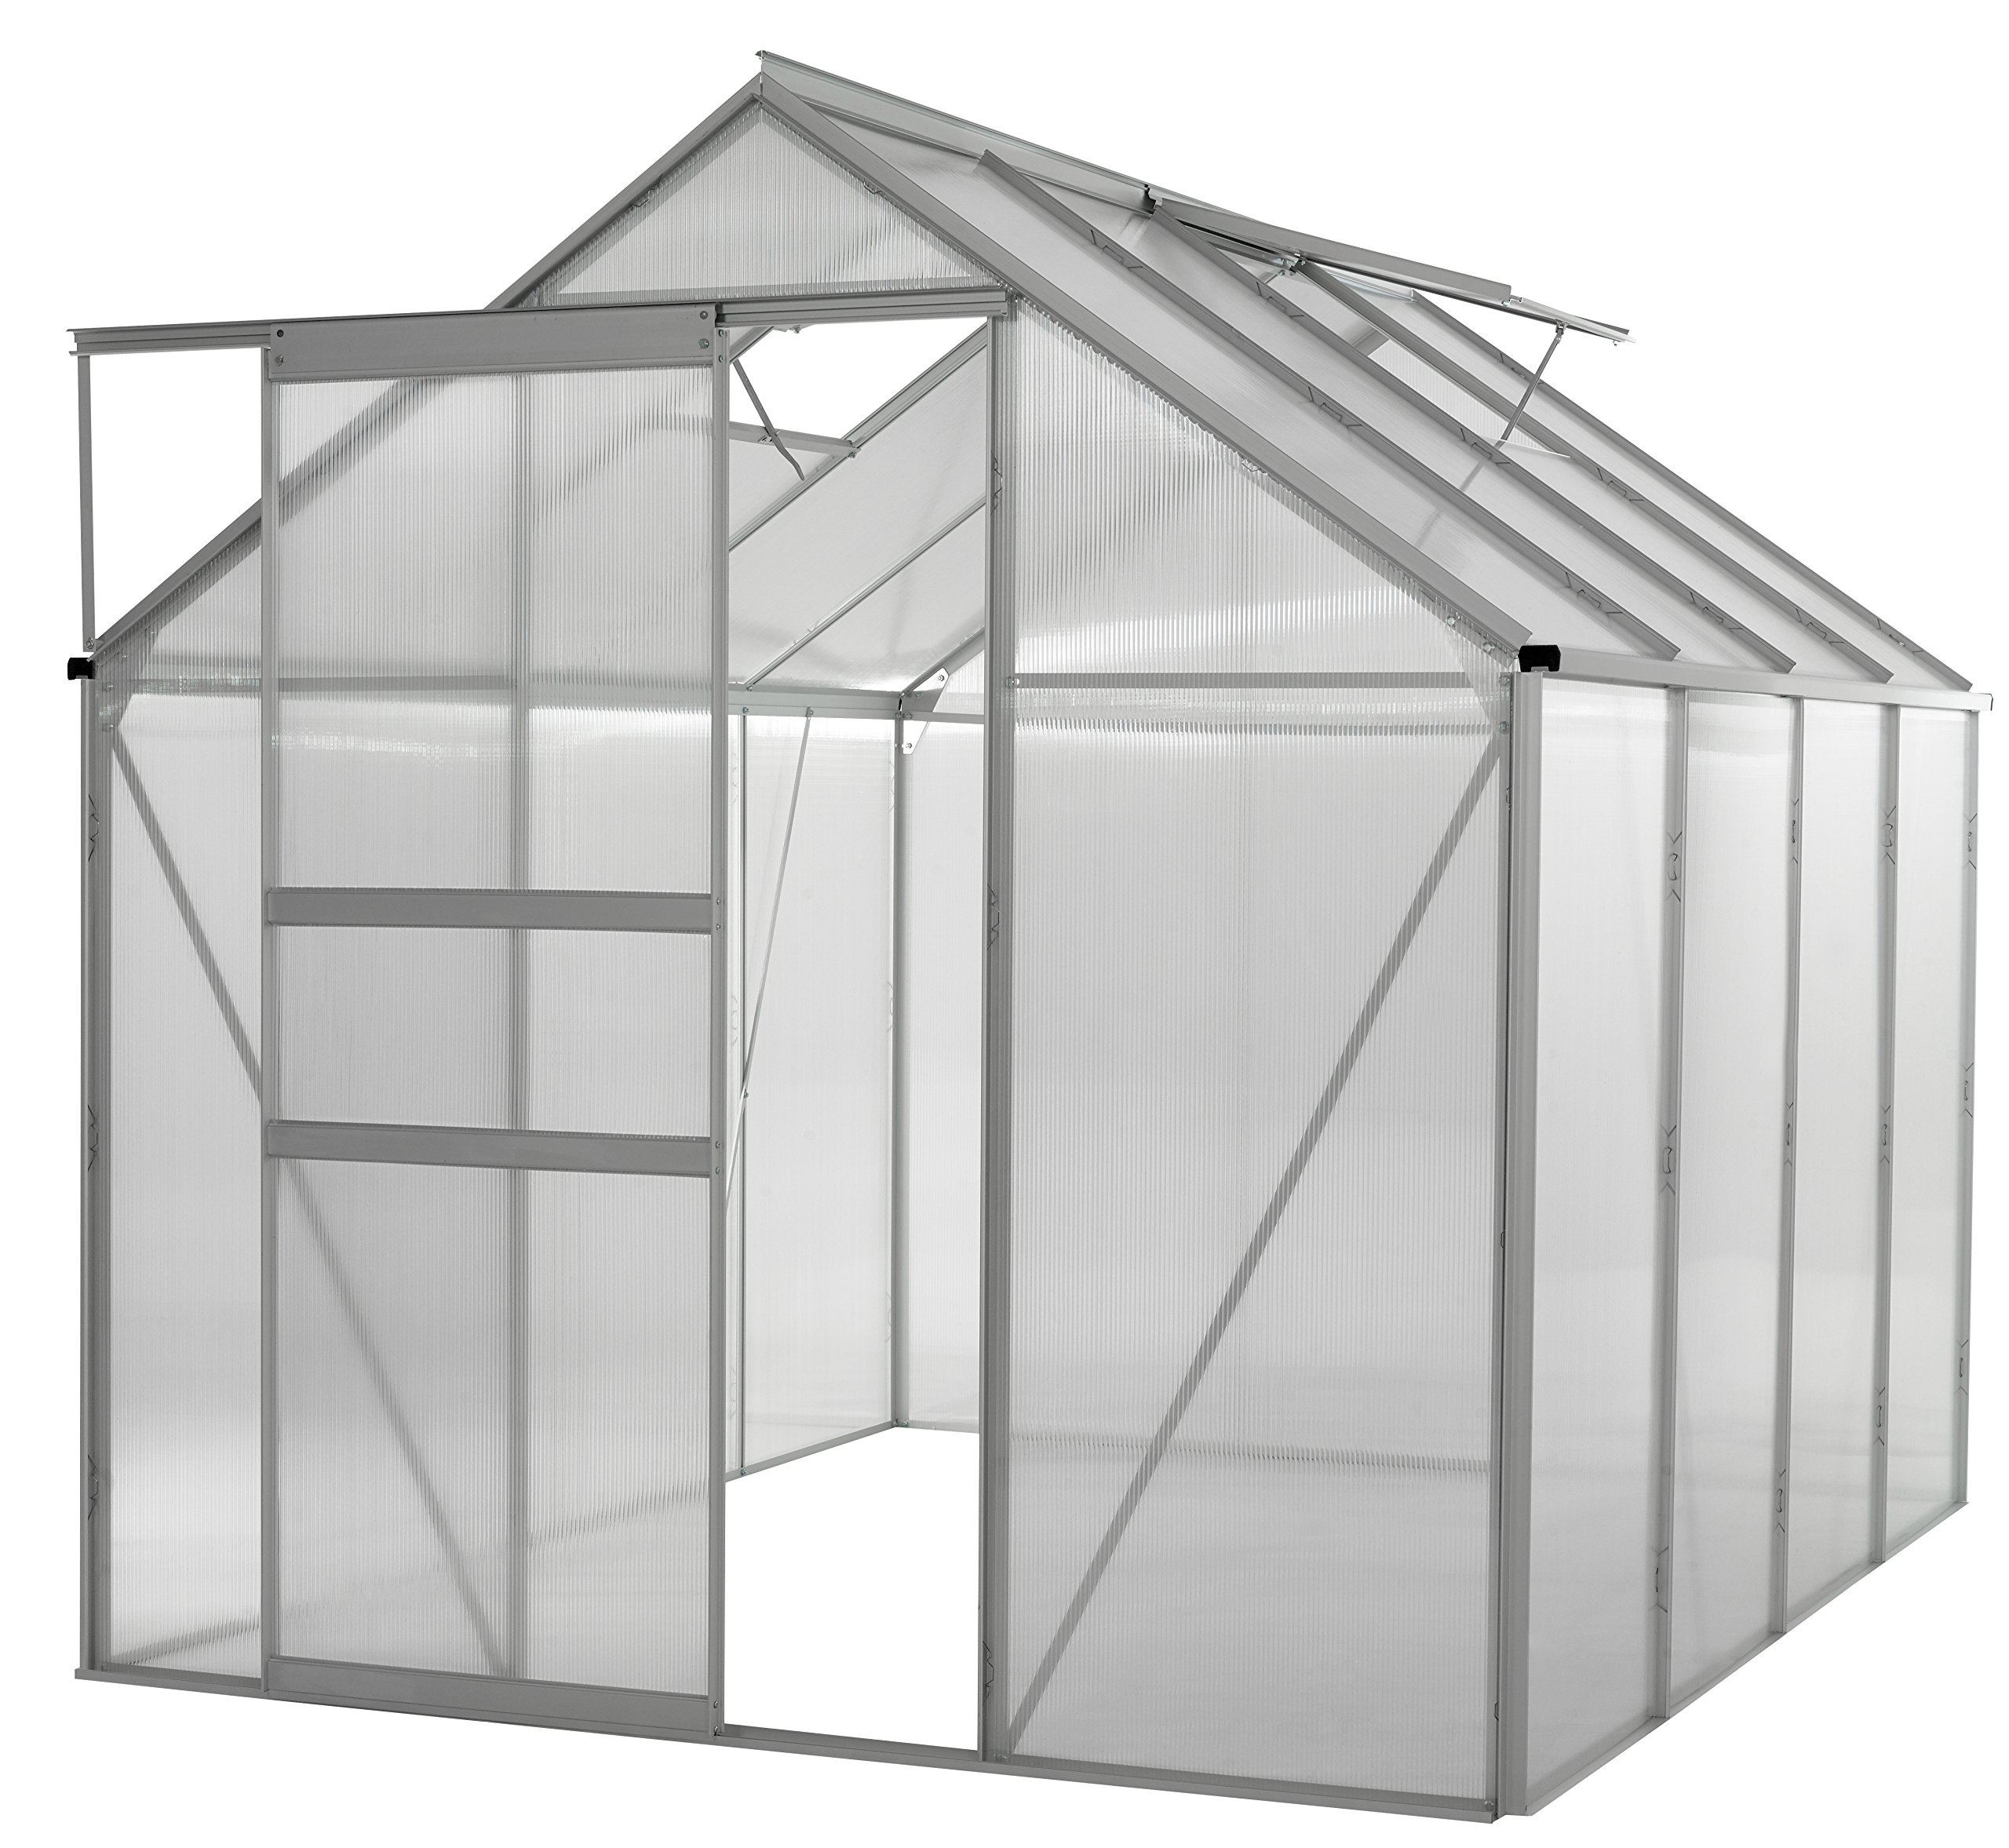 Portable Greenhouses for outdoors | 6 X 8 Greenhouse | Sunroom | Large Green House for plants |Aluminum Patio greenhouse plastic panels |Glass Greenhouse kits |Large greenhouses for outdoors by Ogrow by OGrow